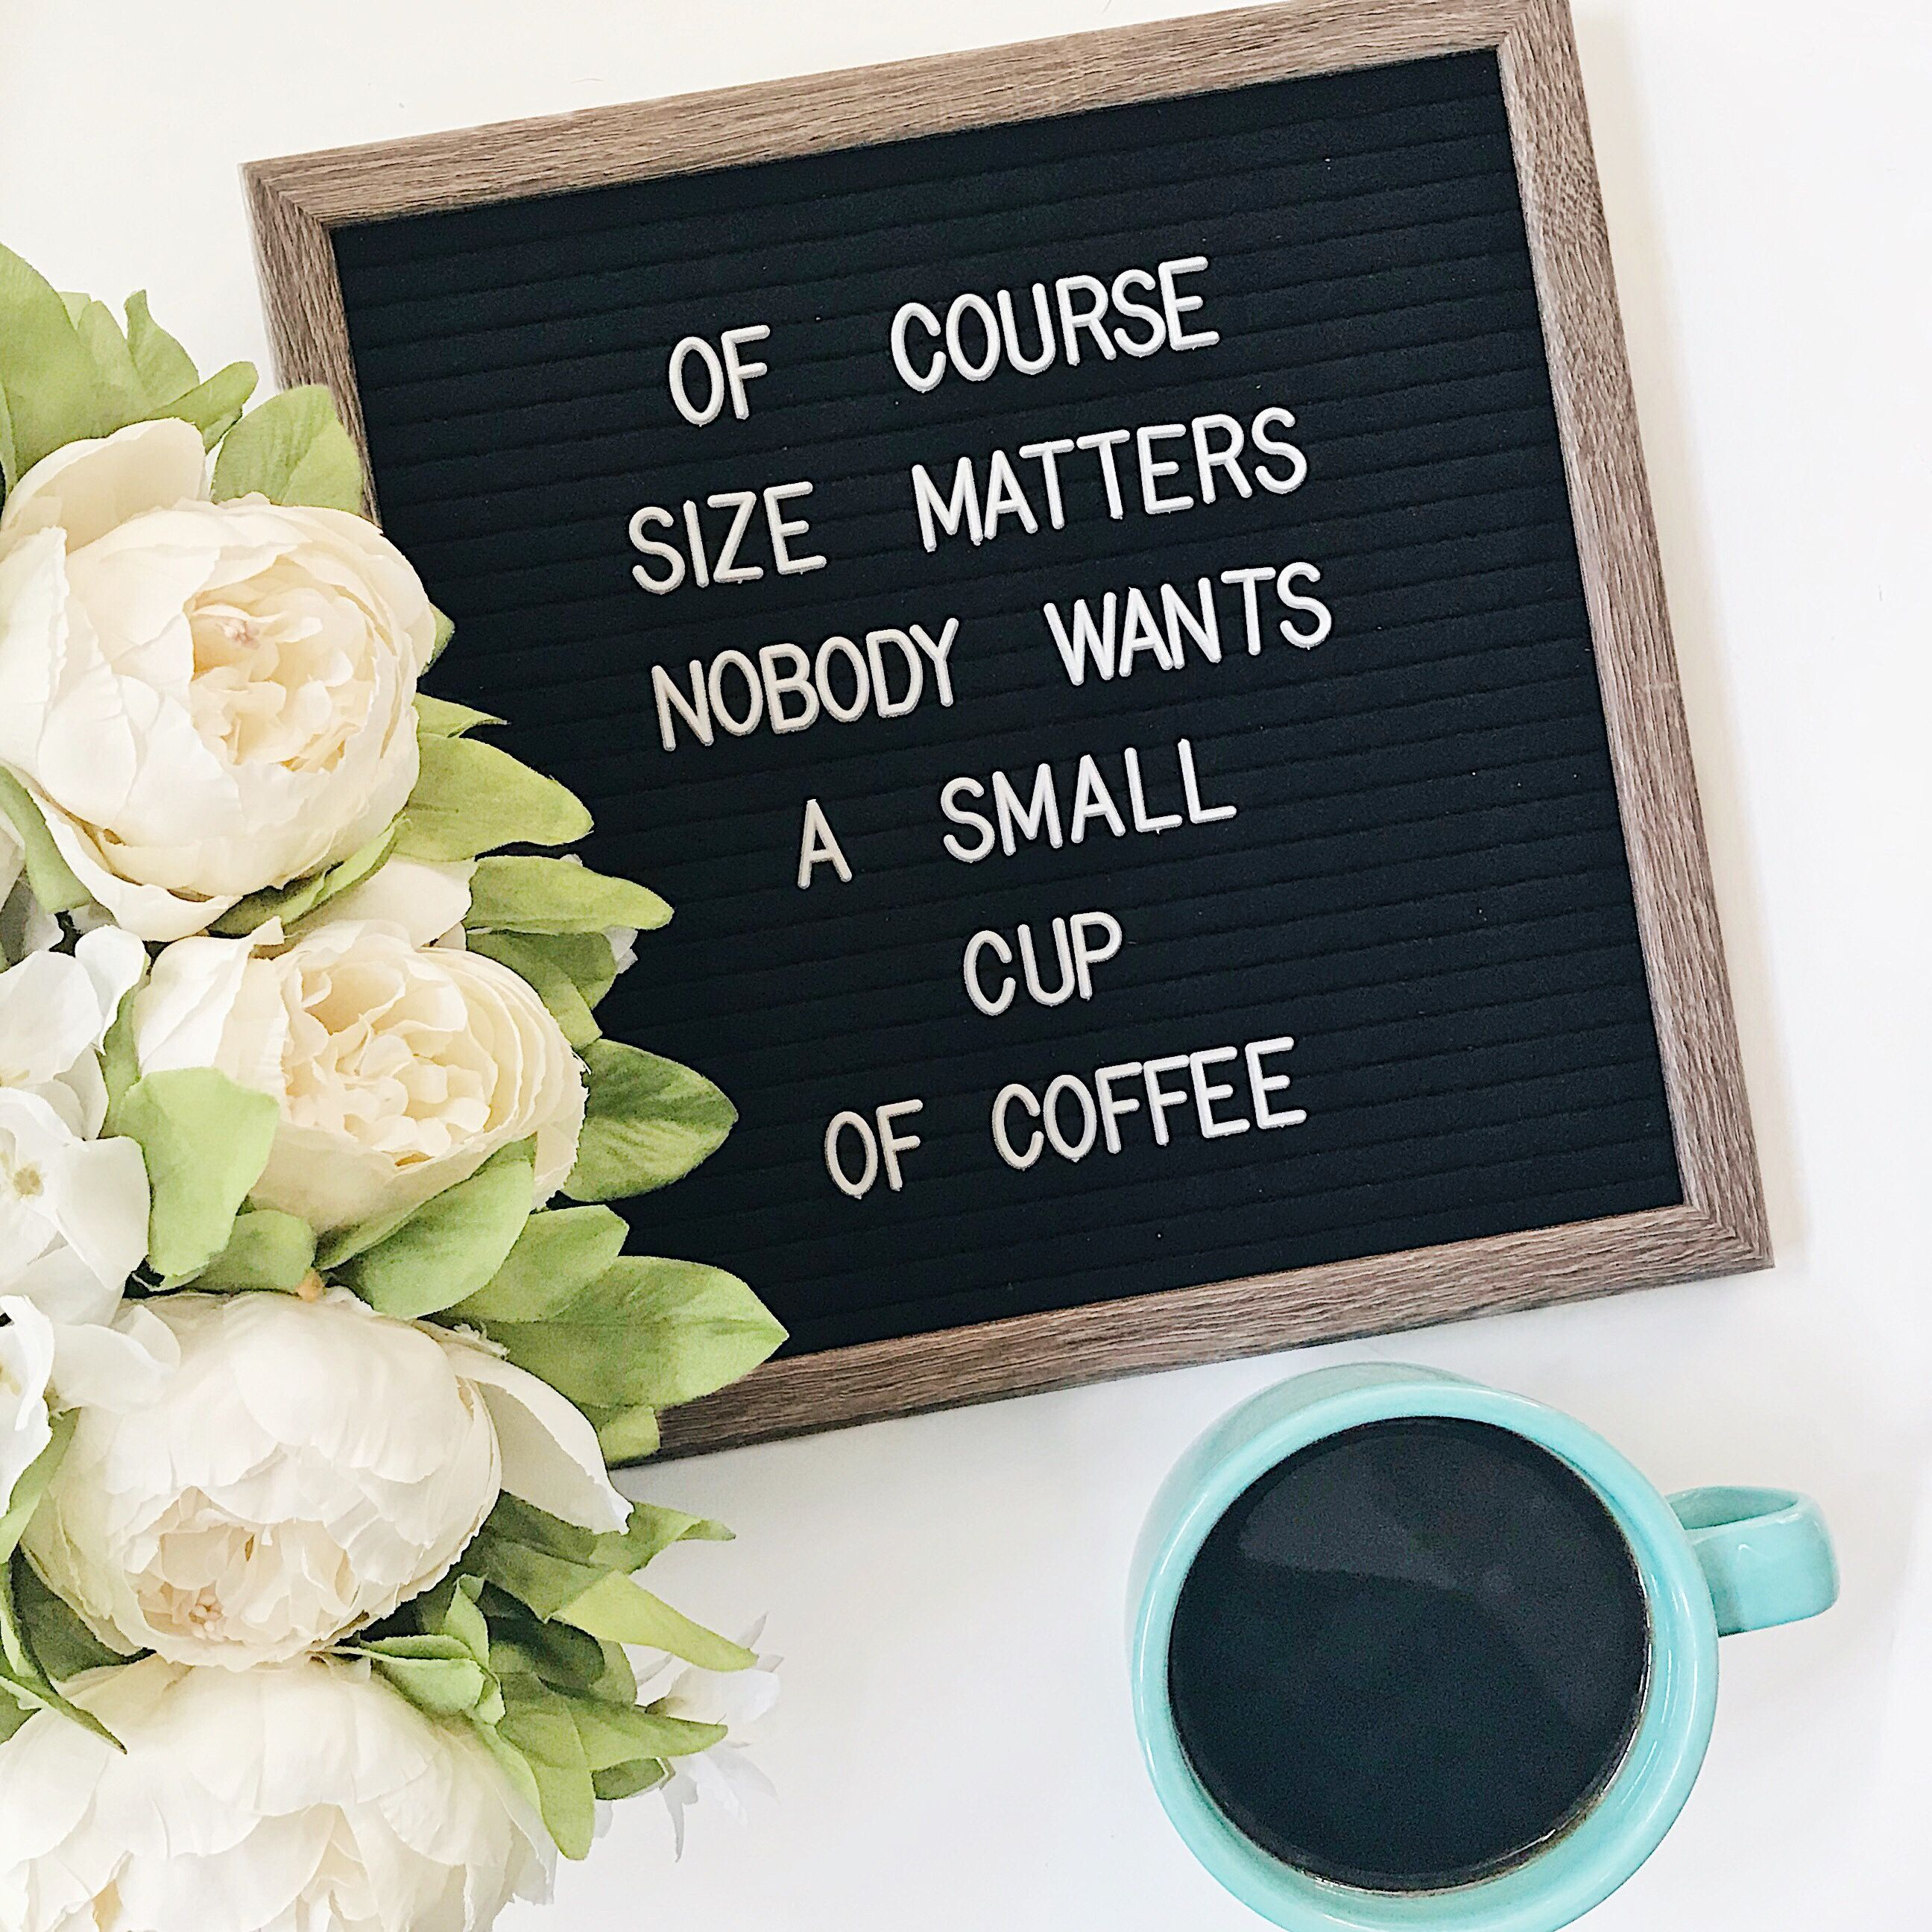 of course size matters nobody wants a small cup of coffee felt